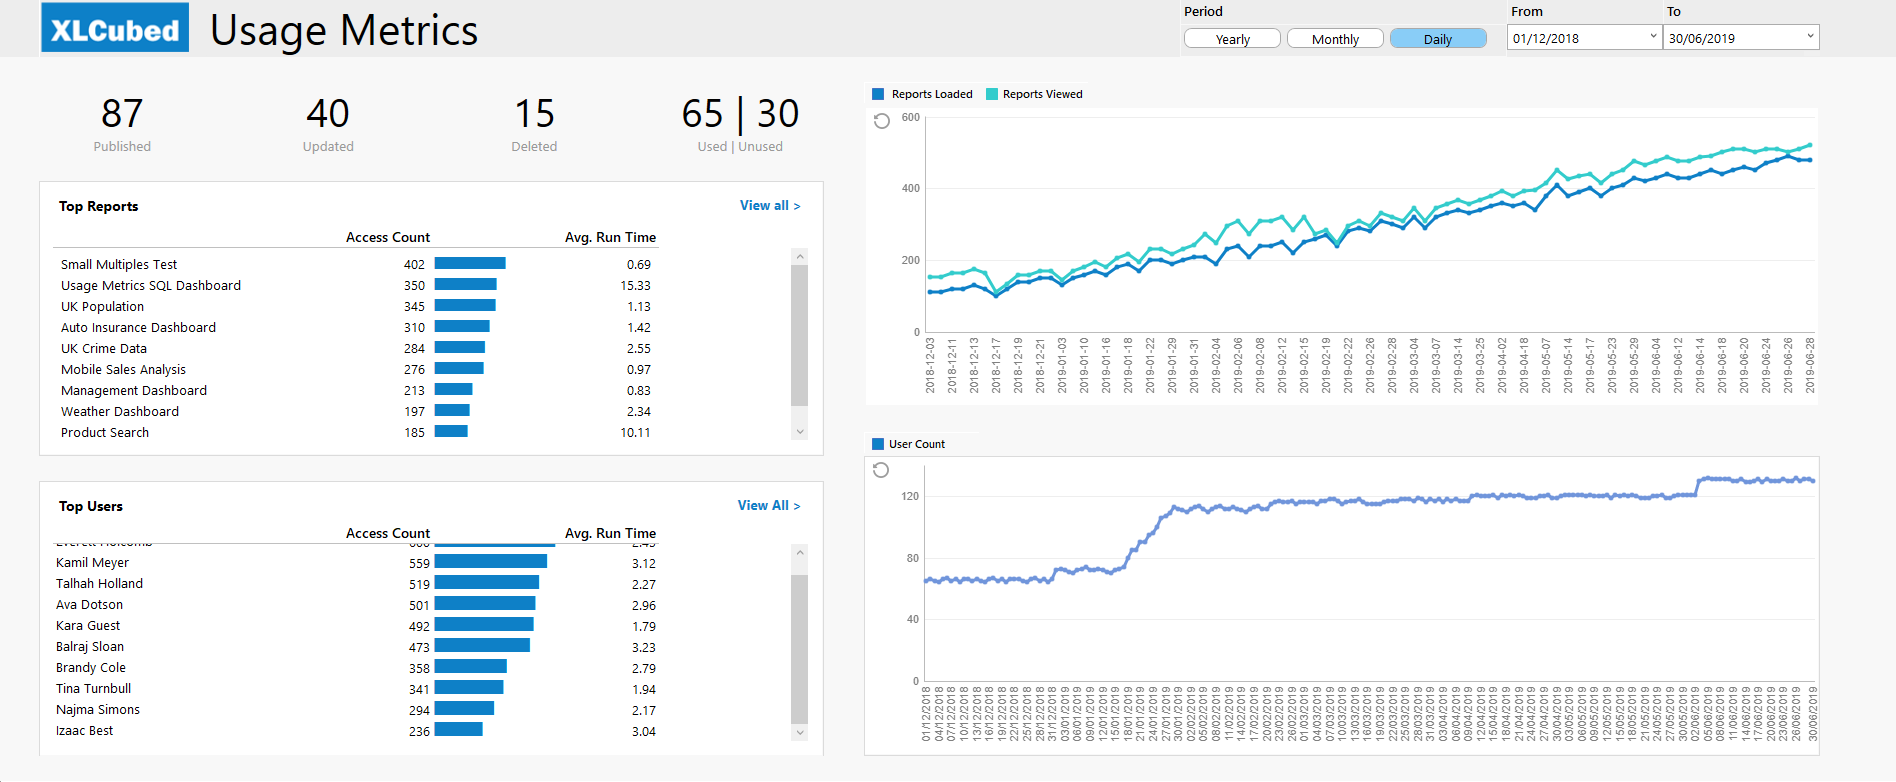 A View of Usage Metrics Report